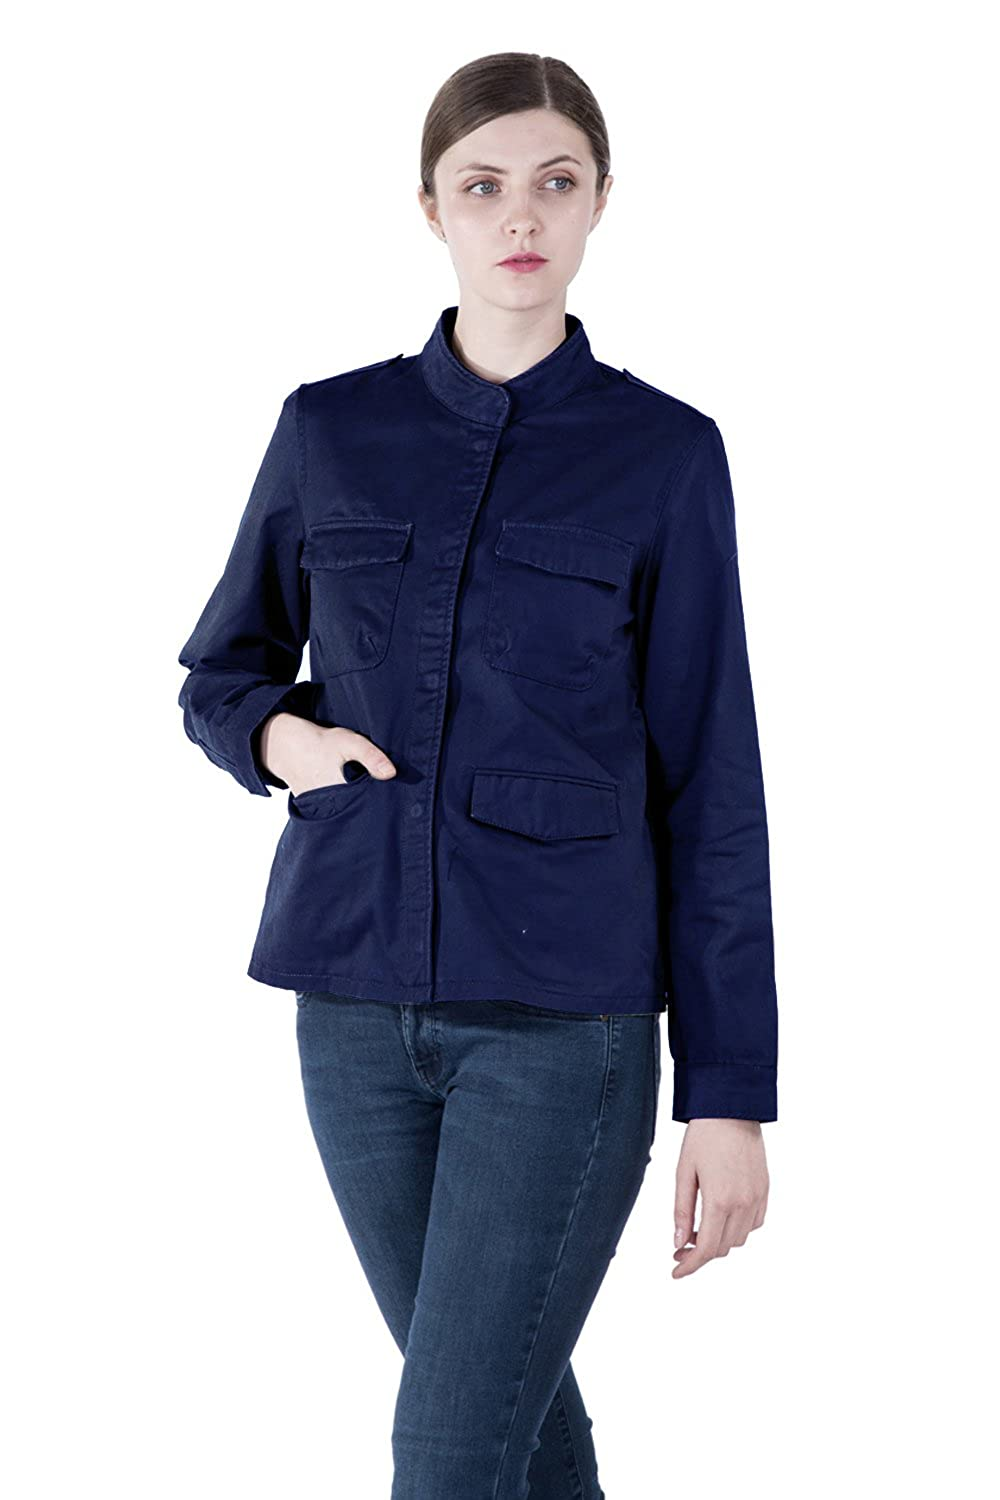 Infron IN FRONT Women Stand Collar Inner Drawstring Adjustable Waist Zipper Plus Size Jacket CVspring coat